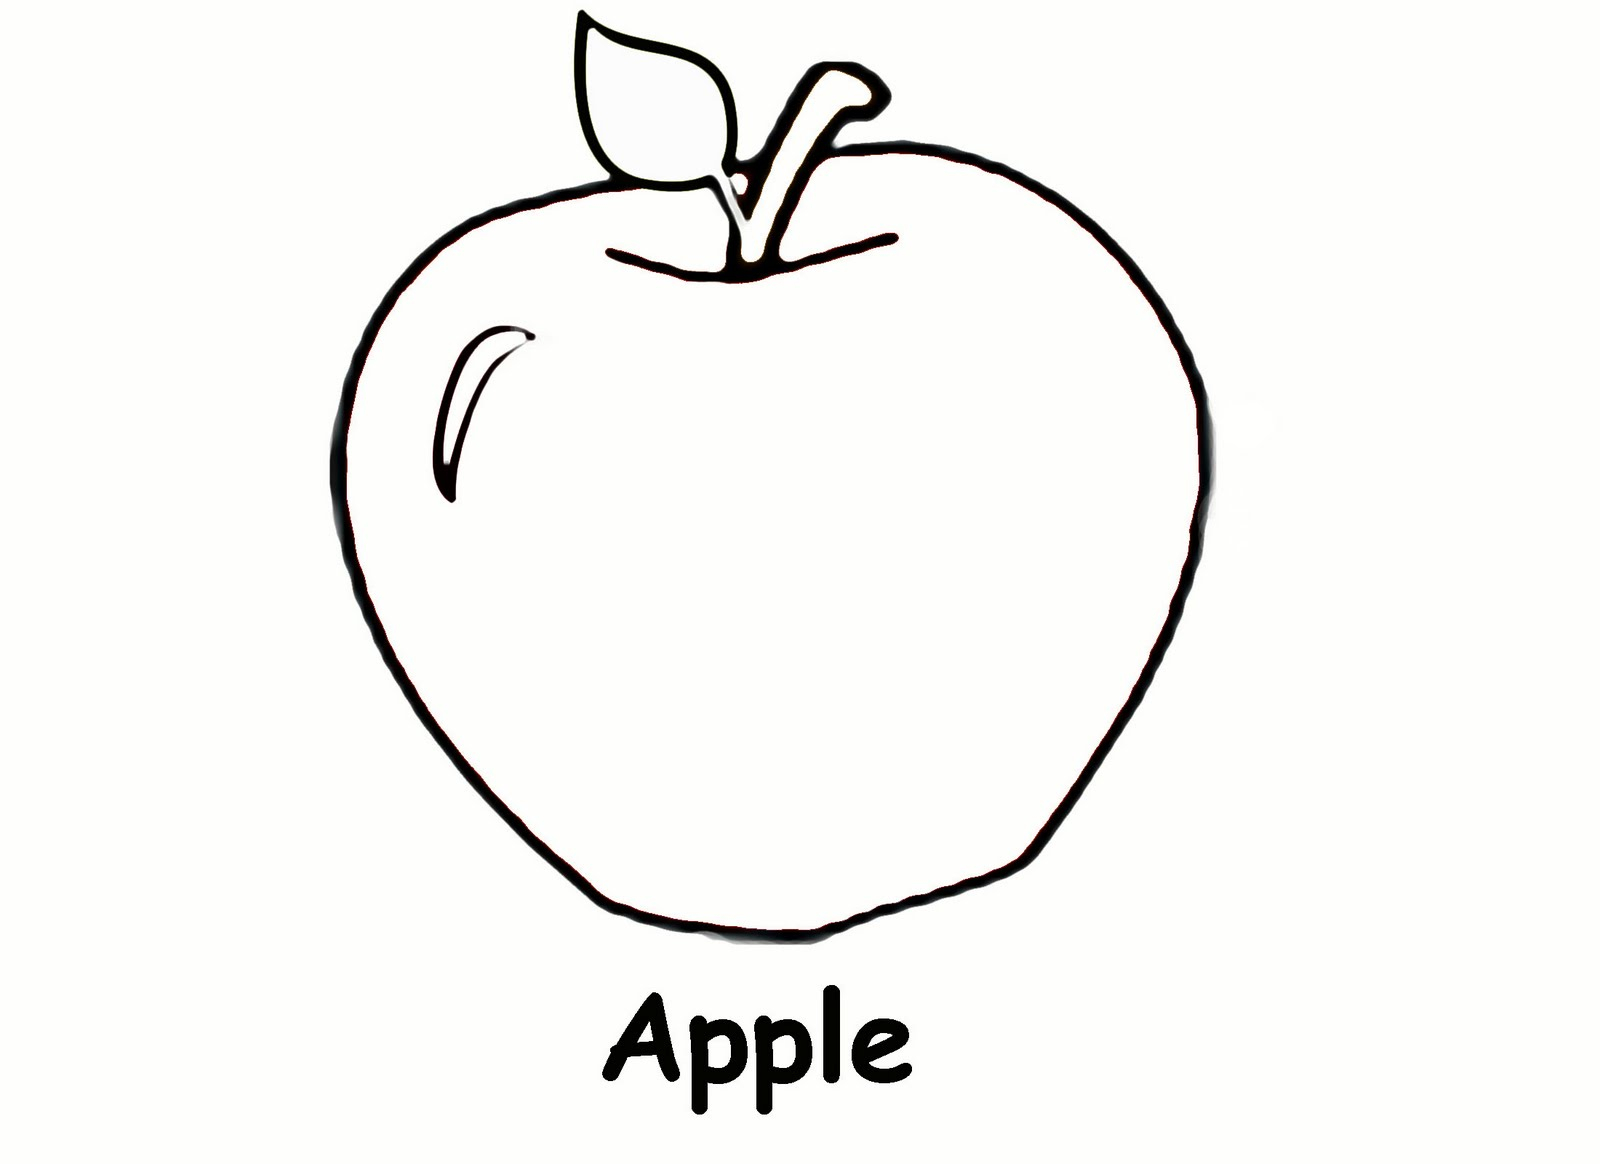 Free Printable Apple Coloring Pages for Kids Printable Of Free Preschool Coloring Pages Page for Kindergarten School Download